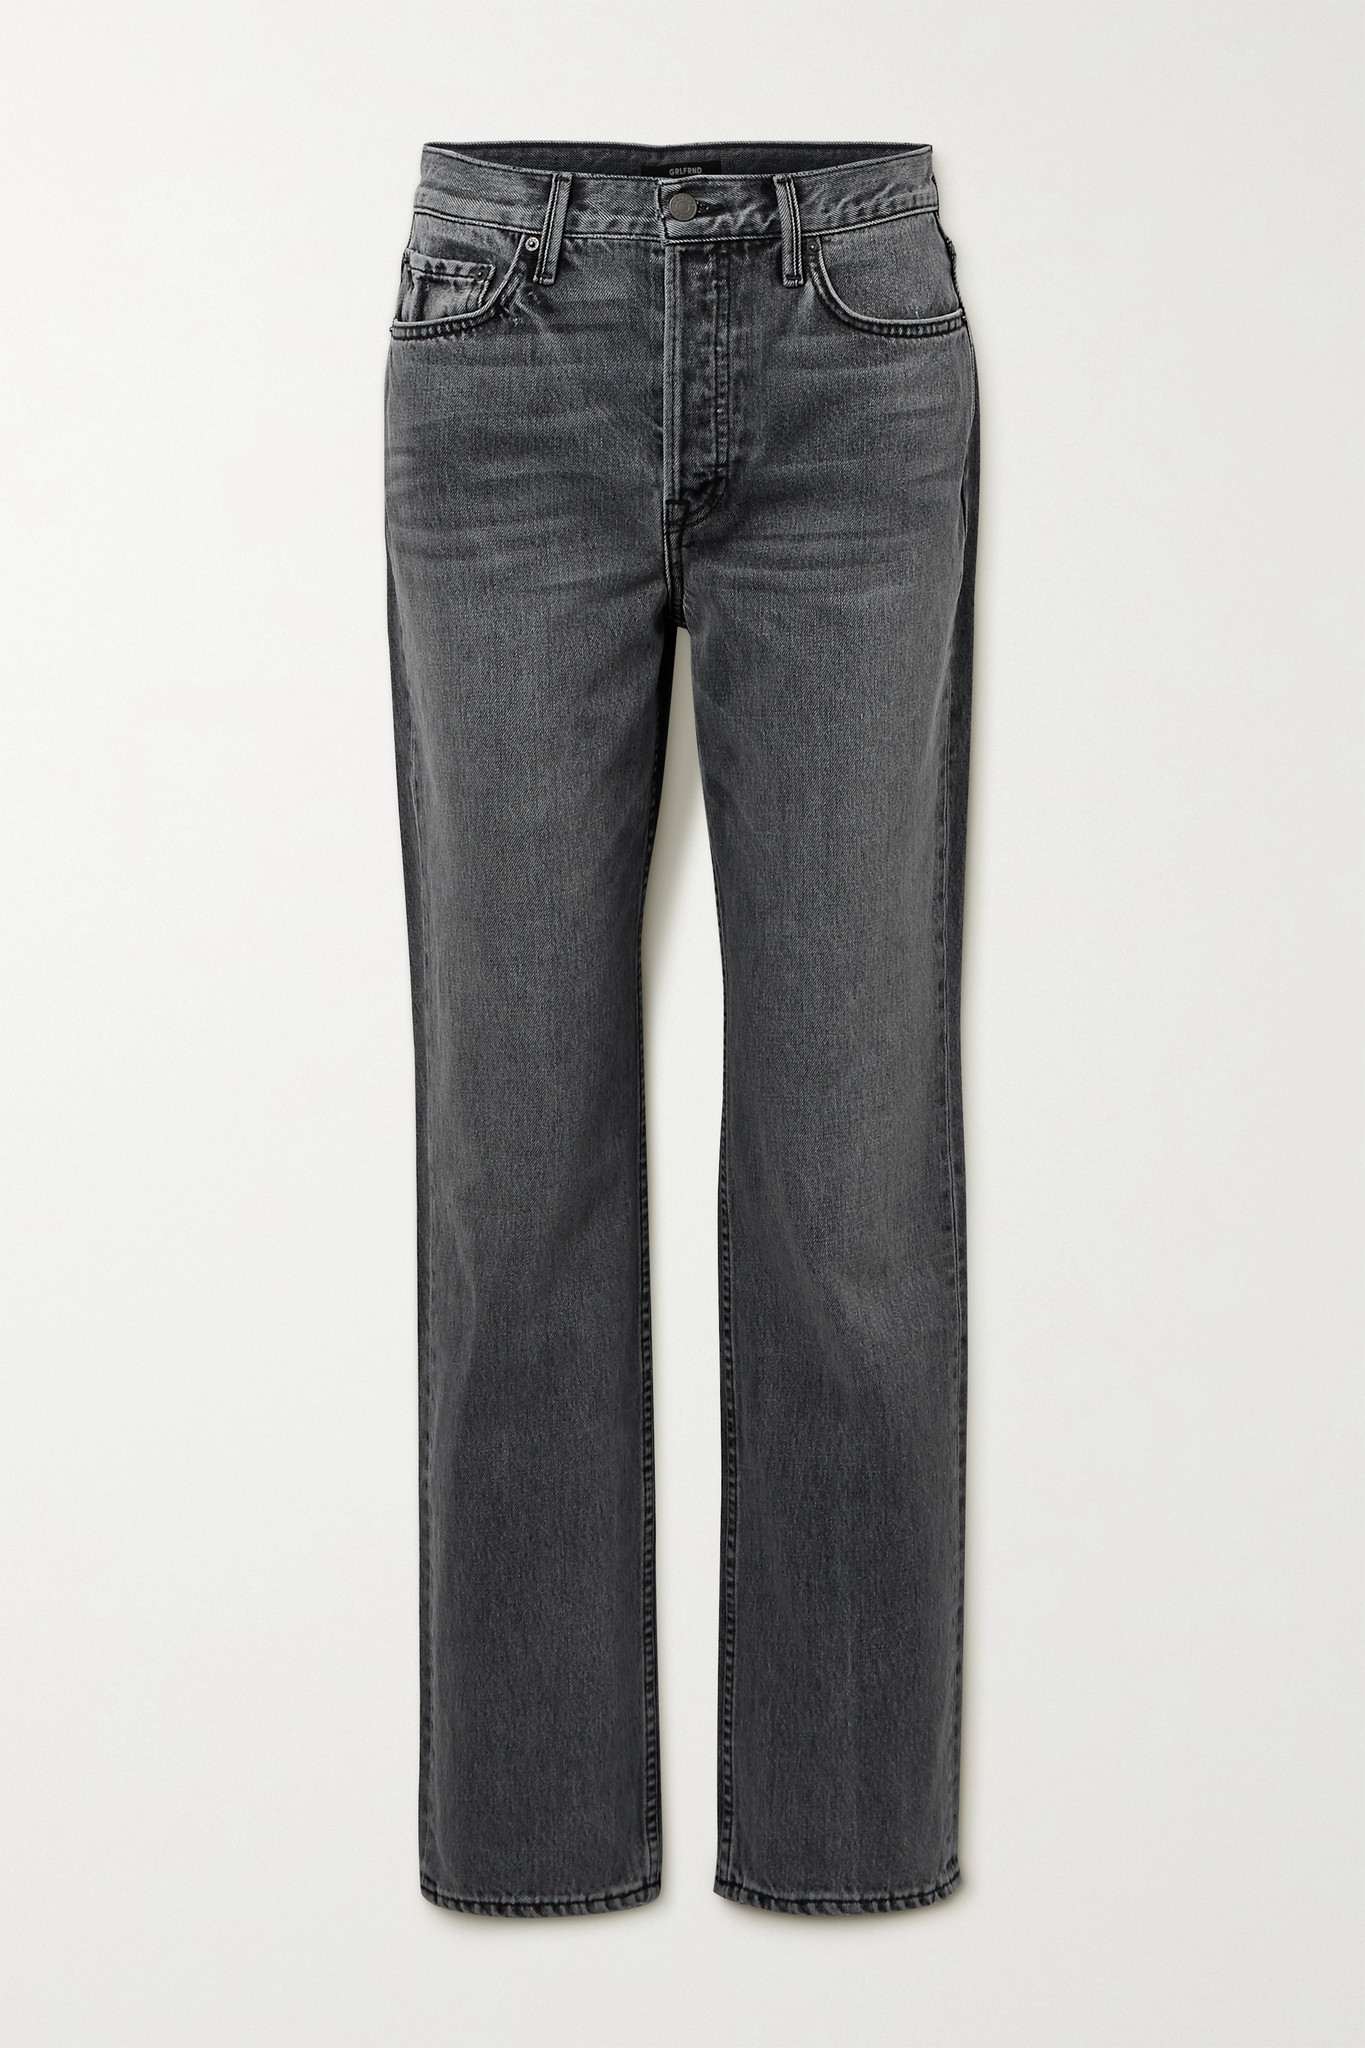 GRLFRND - Mica High-rise Straight-leg Jeans - Gray - 25